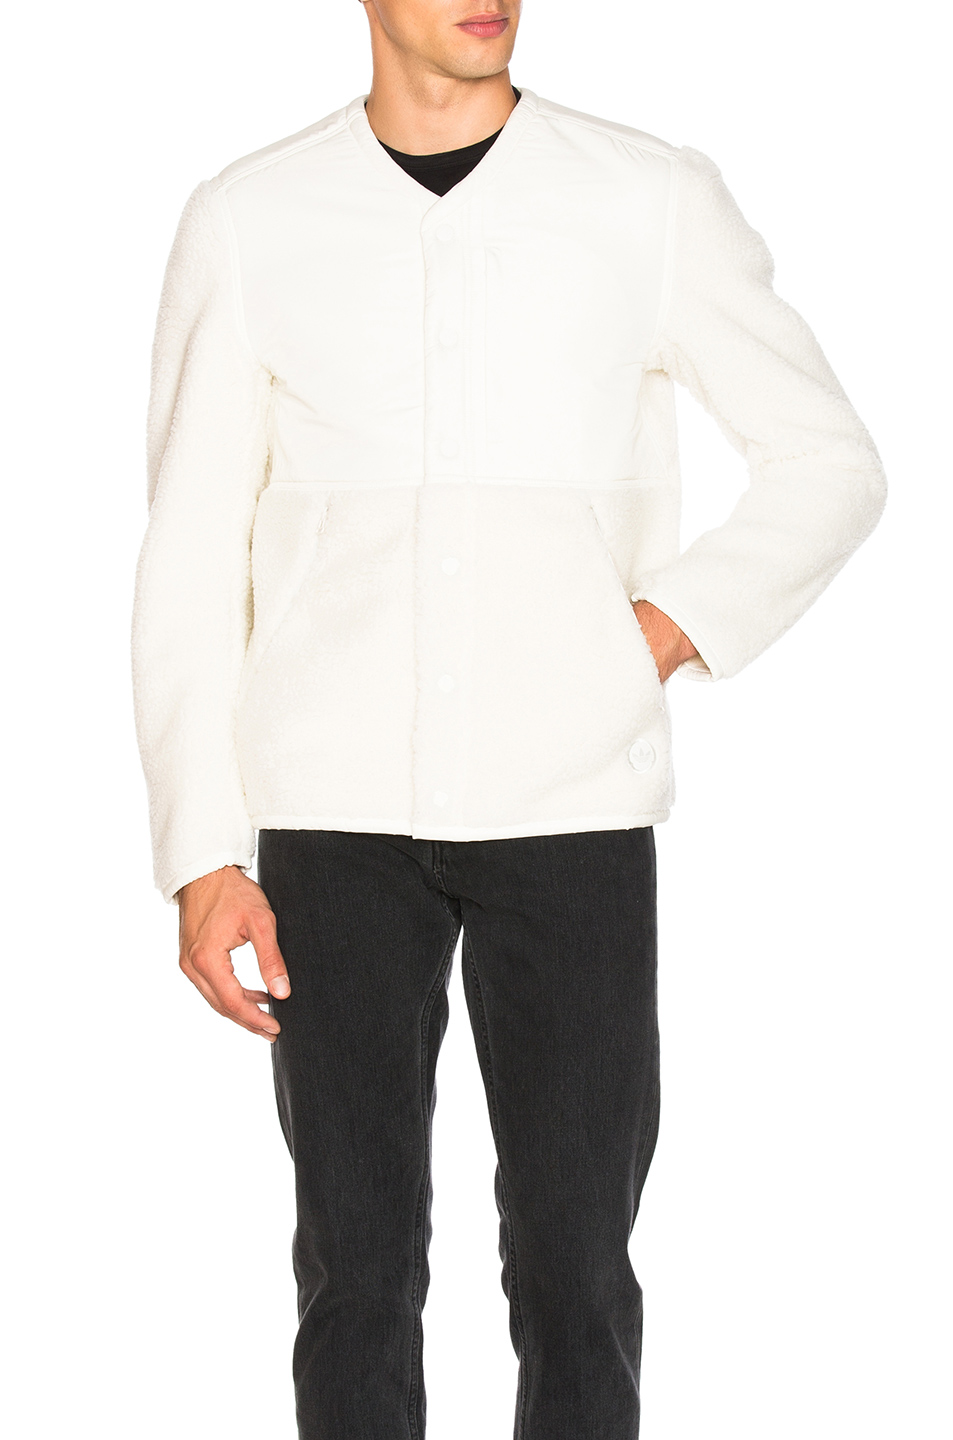 Photo of adidas by wings + horns Faux Shearling Jacket in White - shop adidas by wings + horns menswear